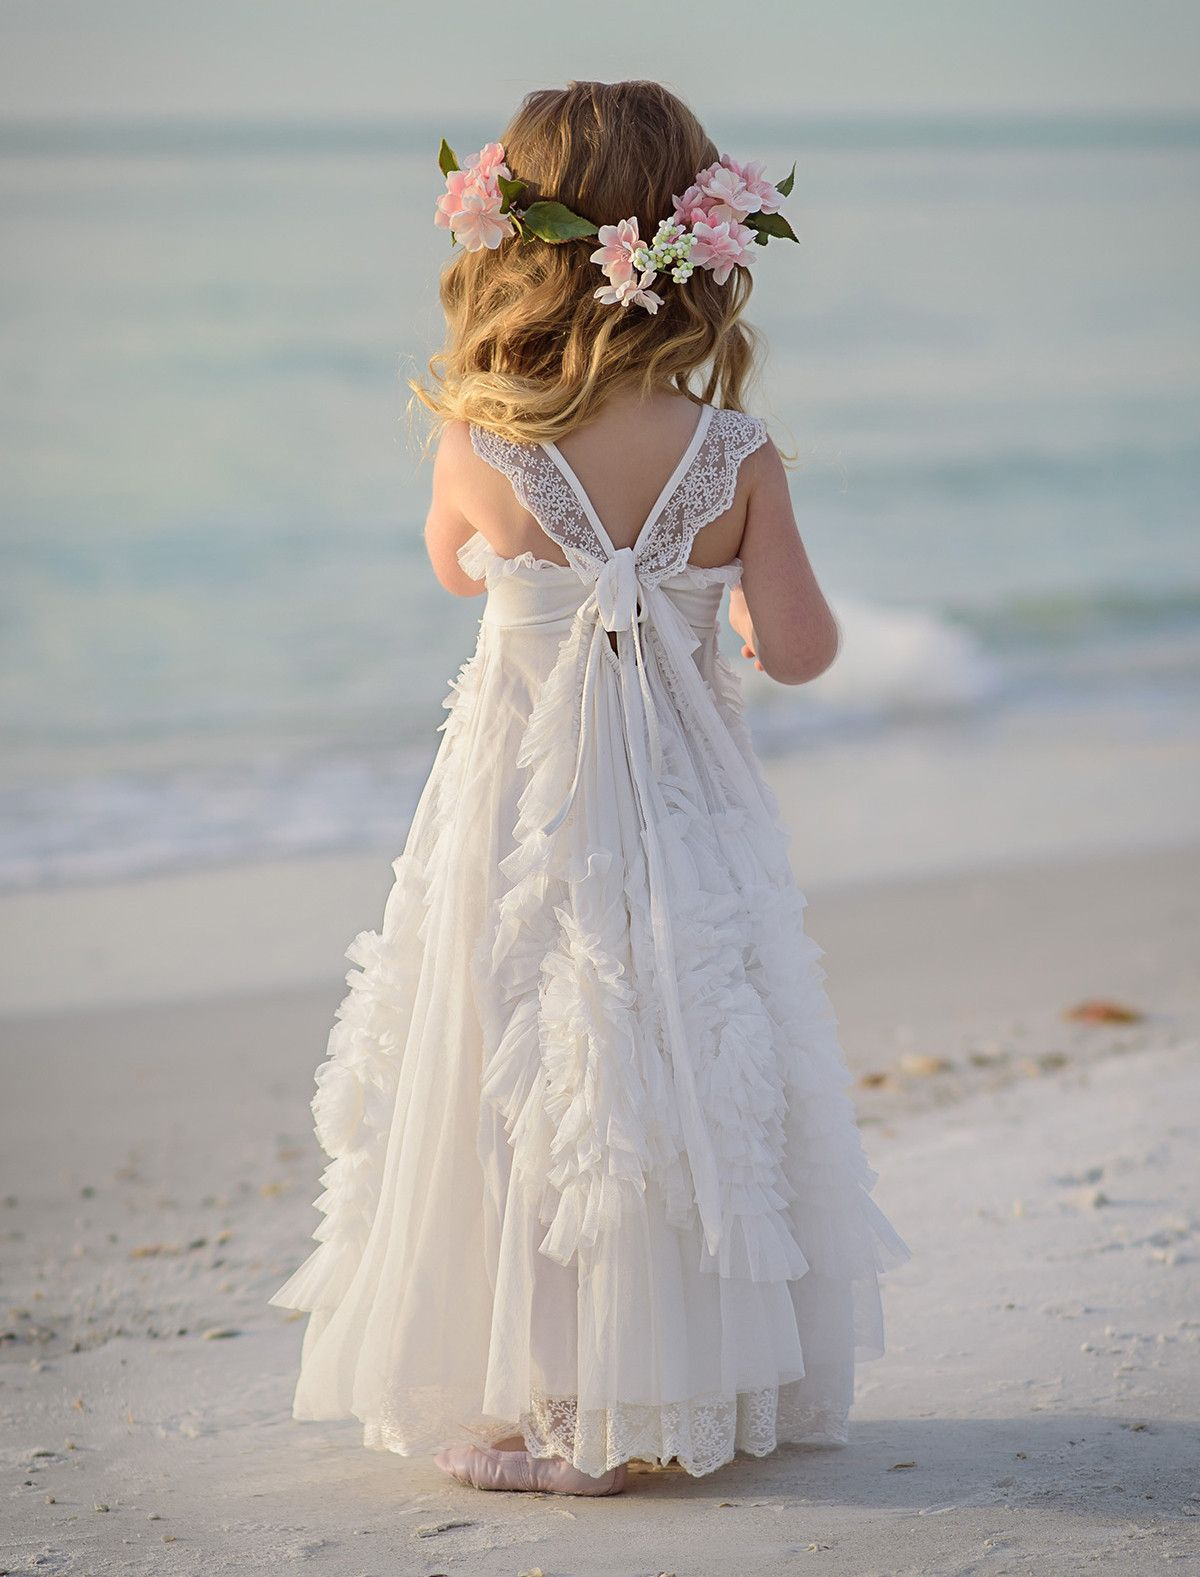 HERE SHE GLOWS FROCK | When 2 say I do | Pinterest | Frocks, Wedding ...